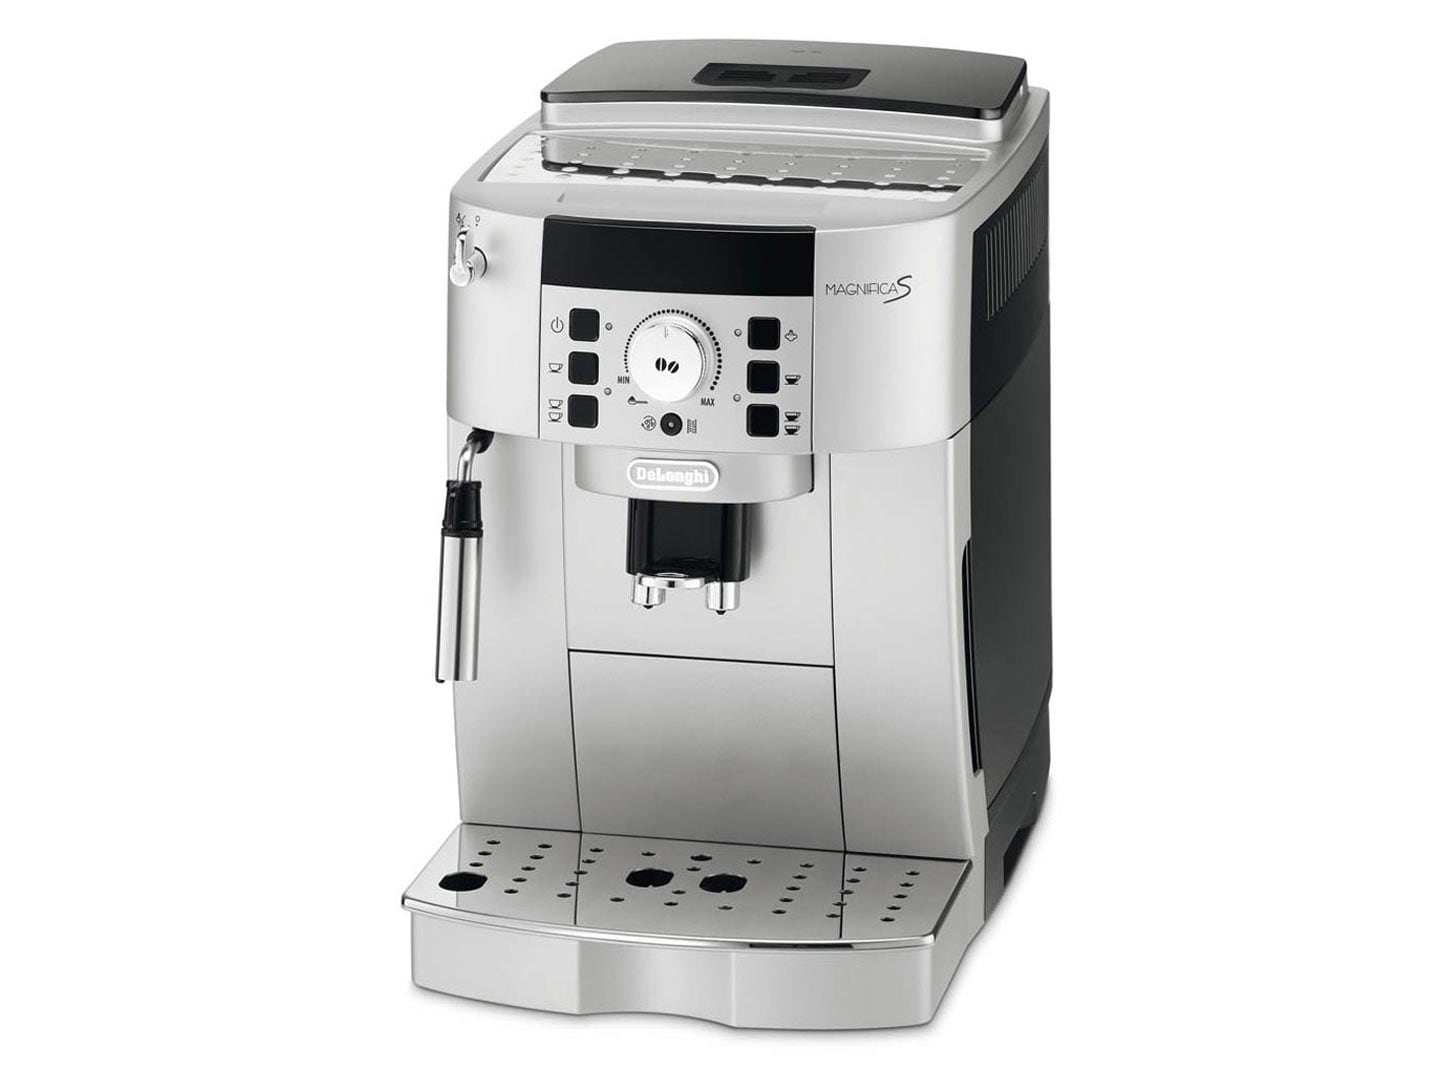 Delonghi koffiemachine defect